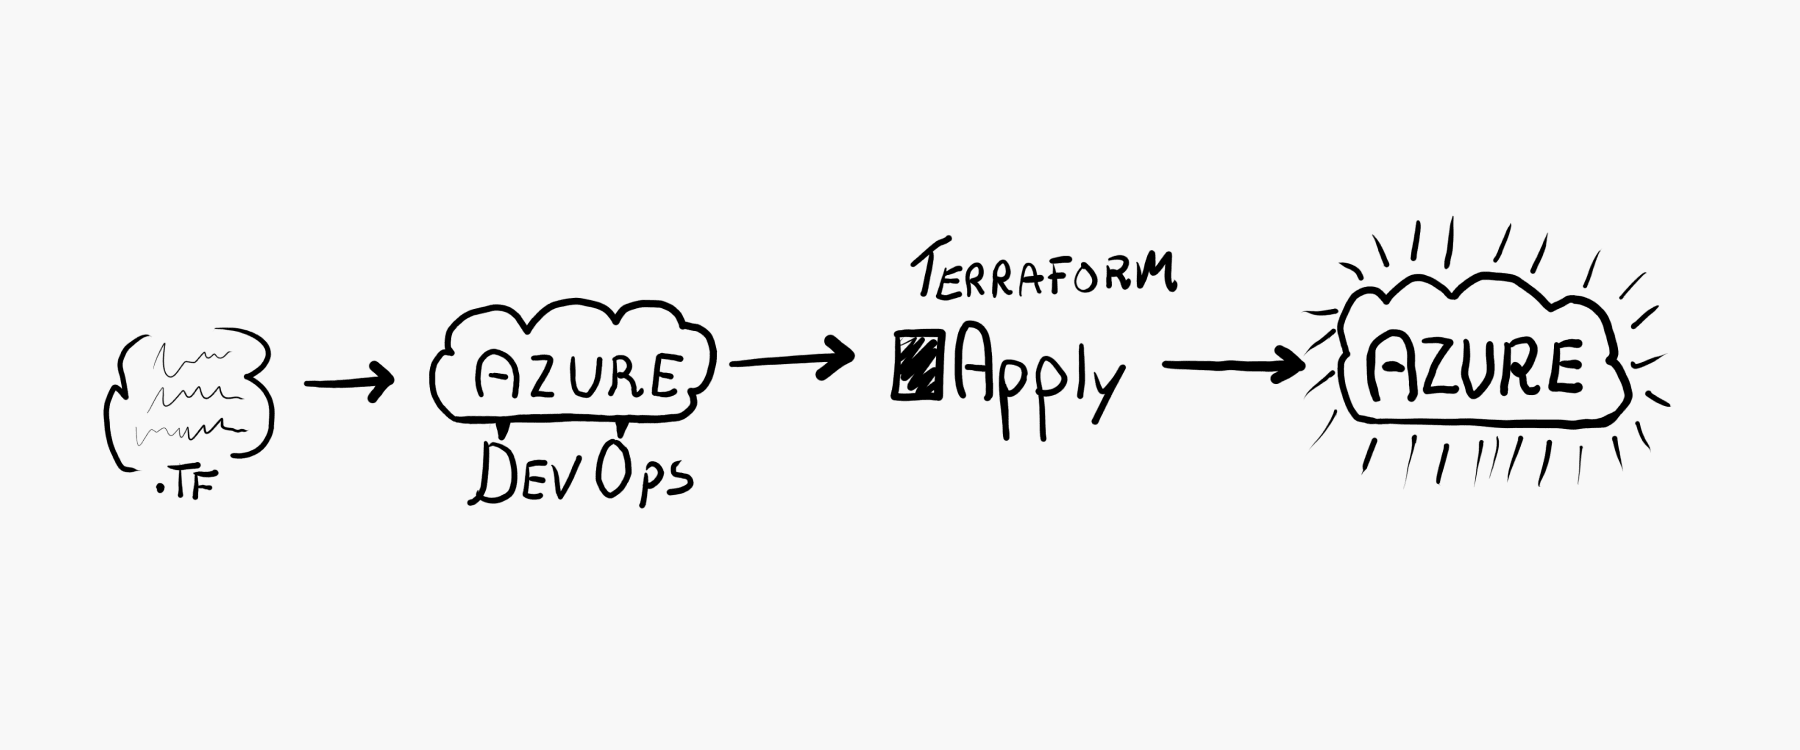 image from Provisioning an App Service on Azure using Terraform with Azure DevOps